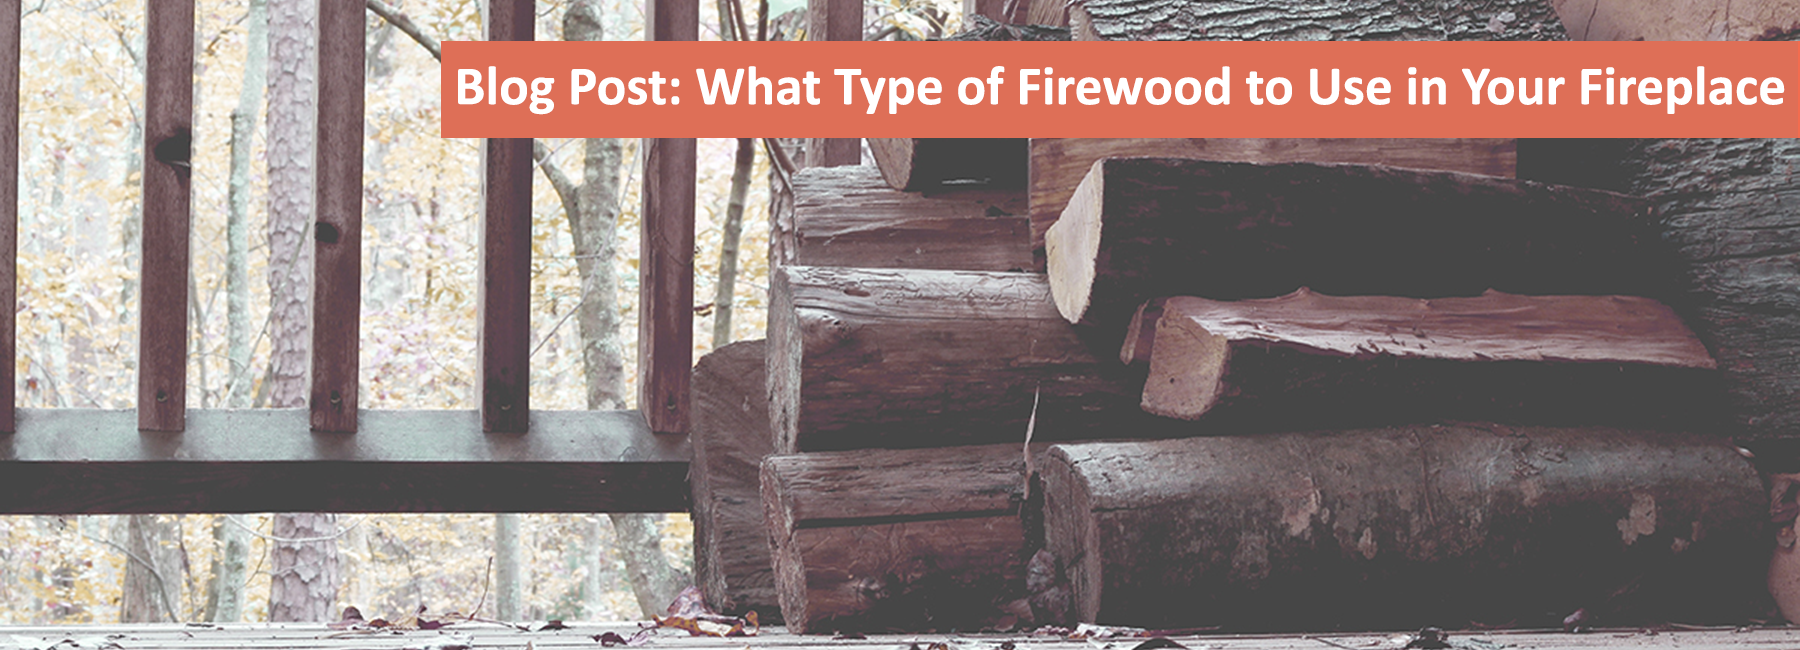 What type of firewood to use in your fireplace